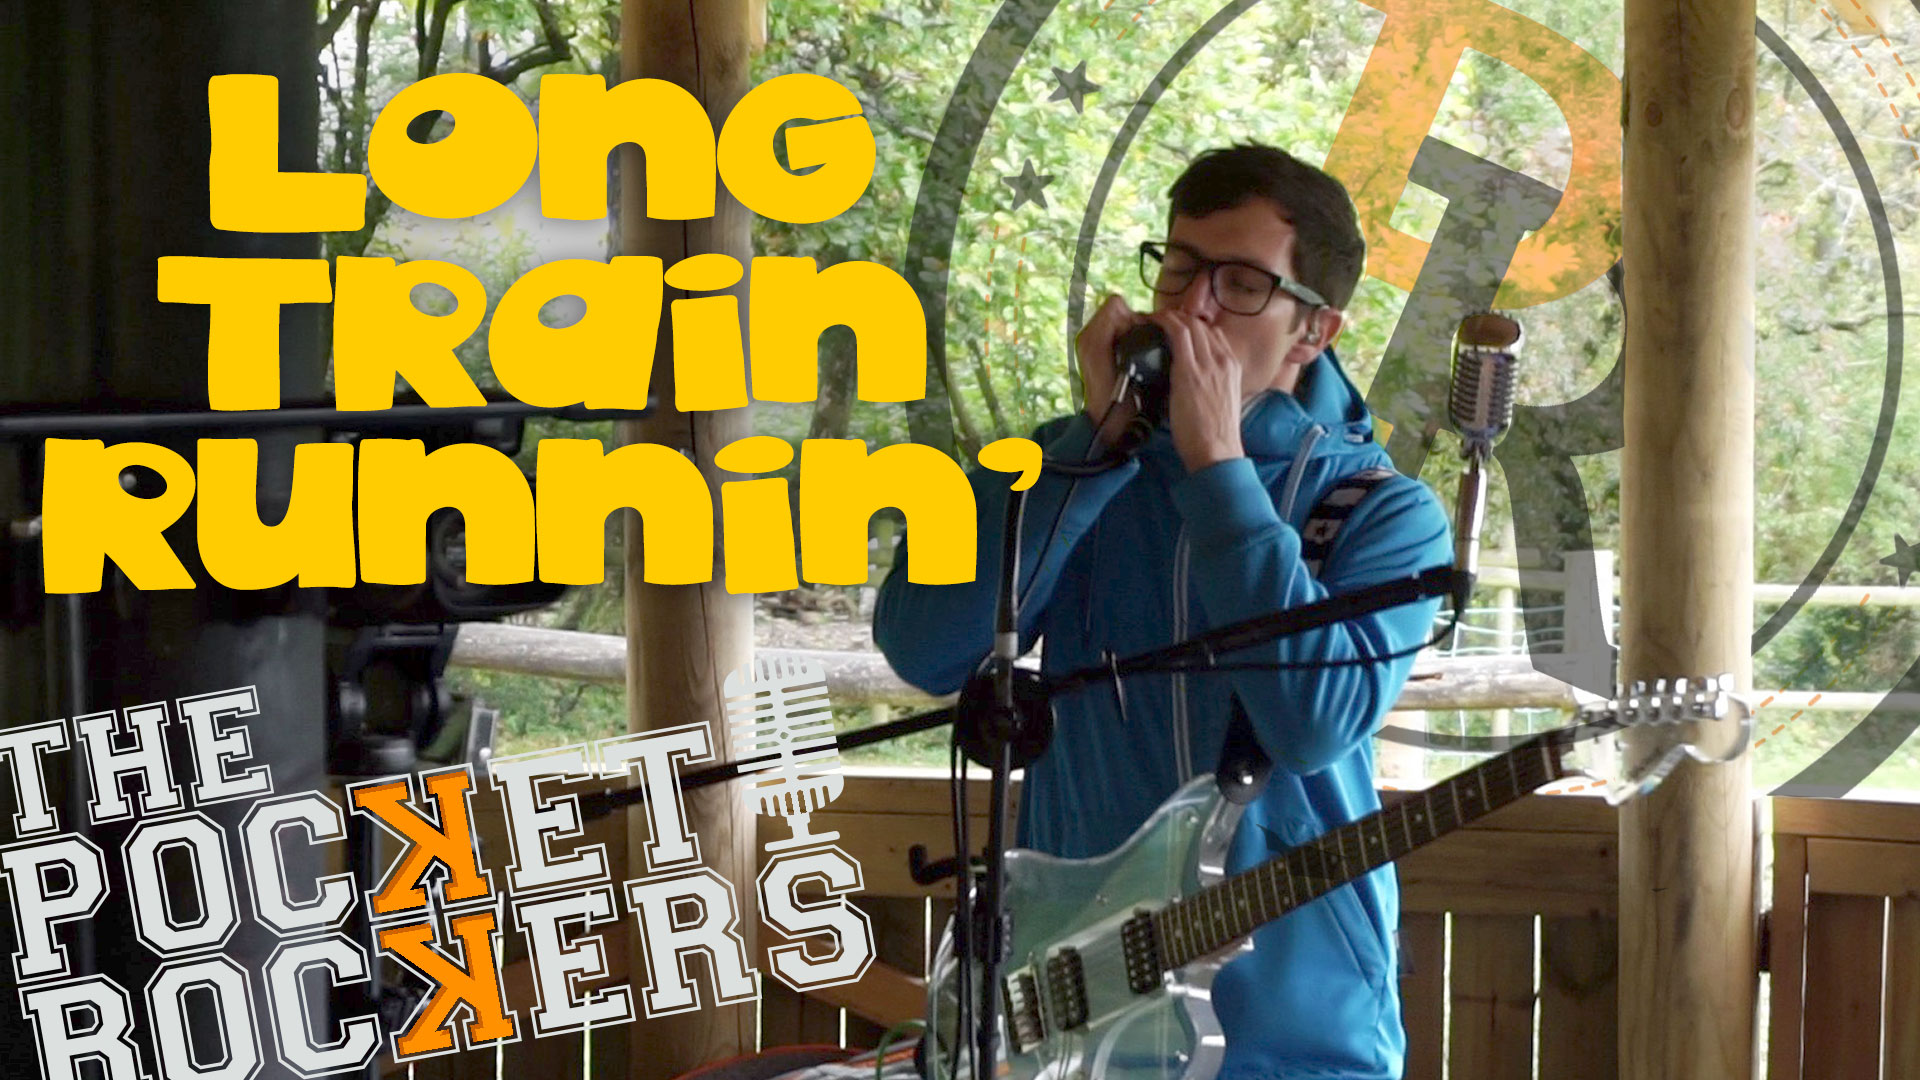 Thumbnail for the music video Long Train Running performed by The Pocket Rockers